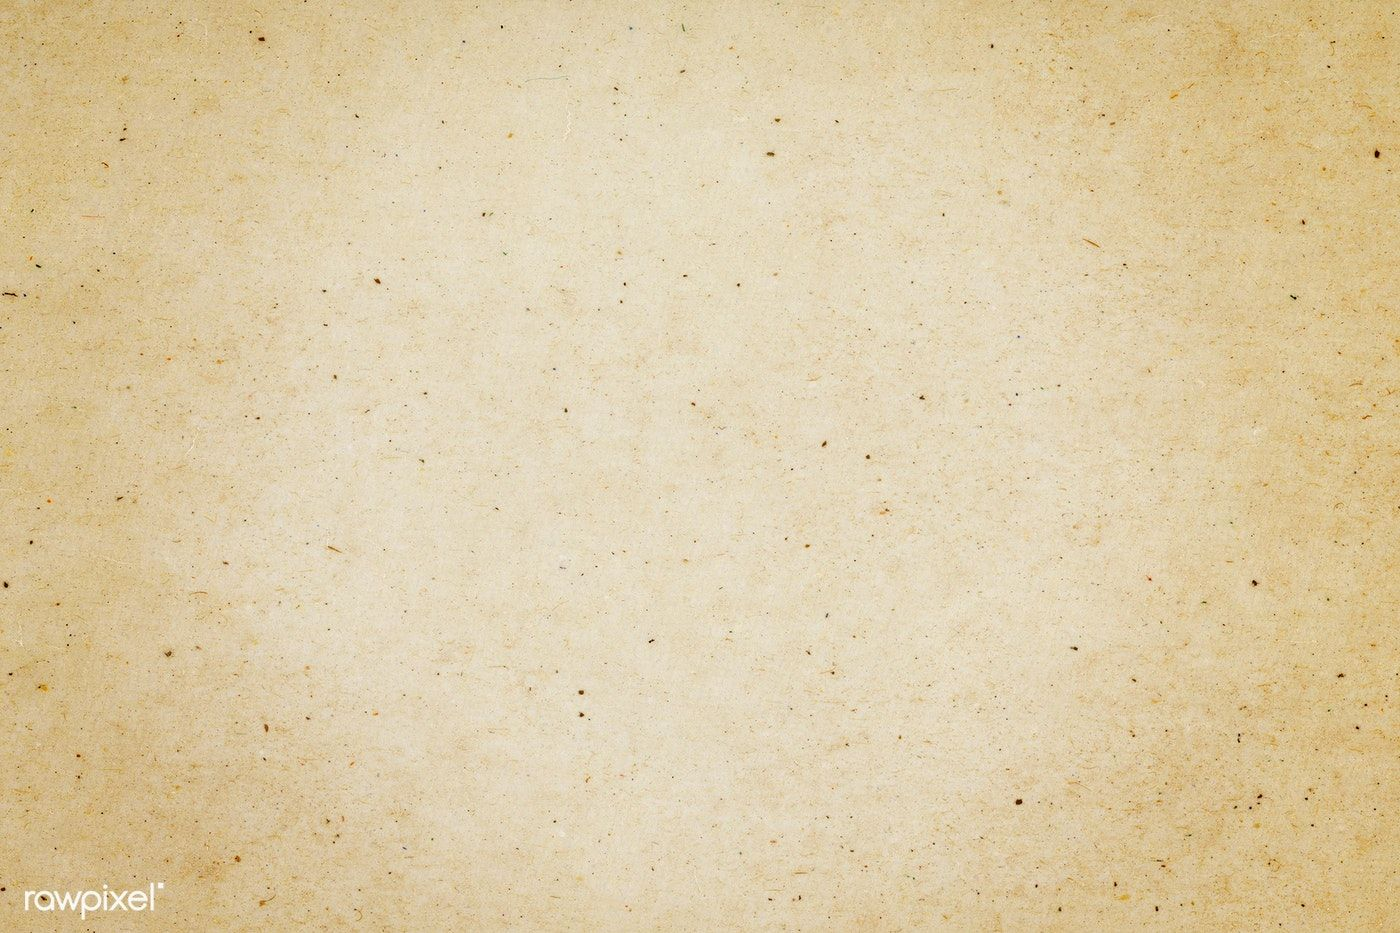 Beige Mulberry Paper Textured Background Free Image By Rawpixel Com Paper Texture Background White Paper Texture Paper Background Texture